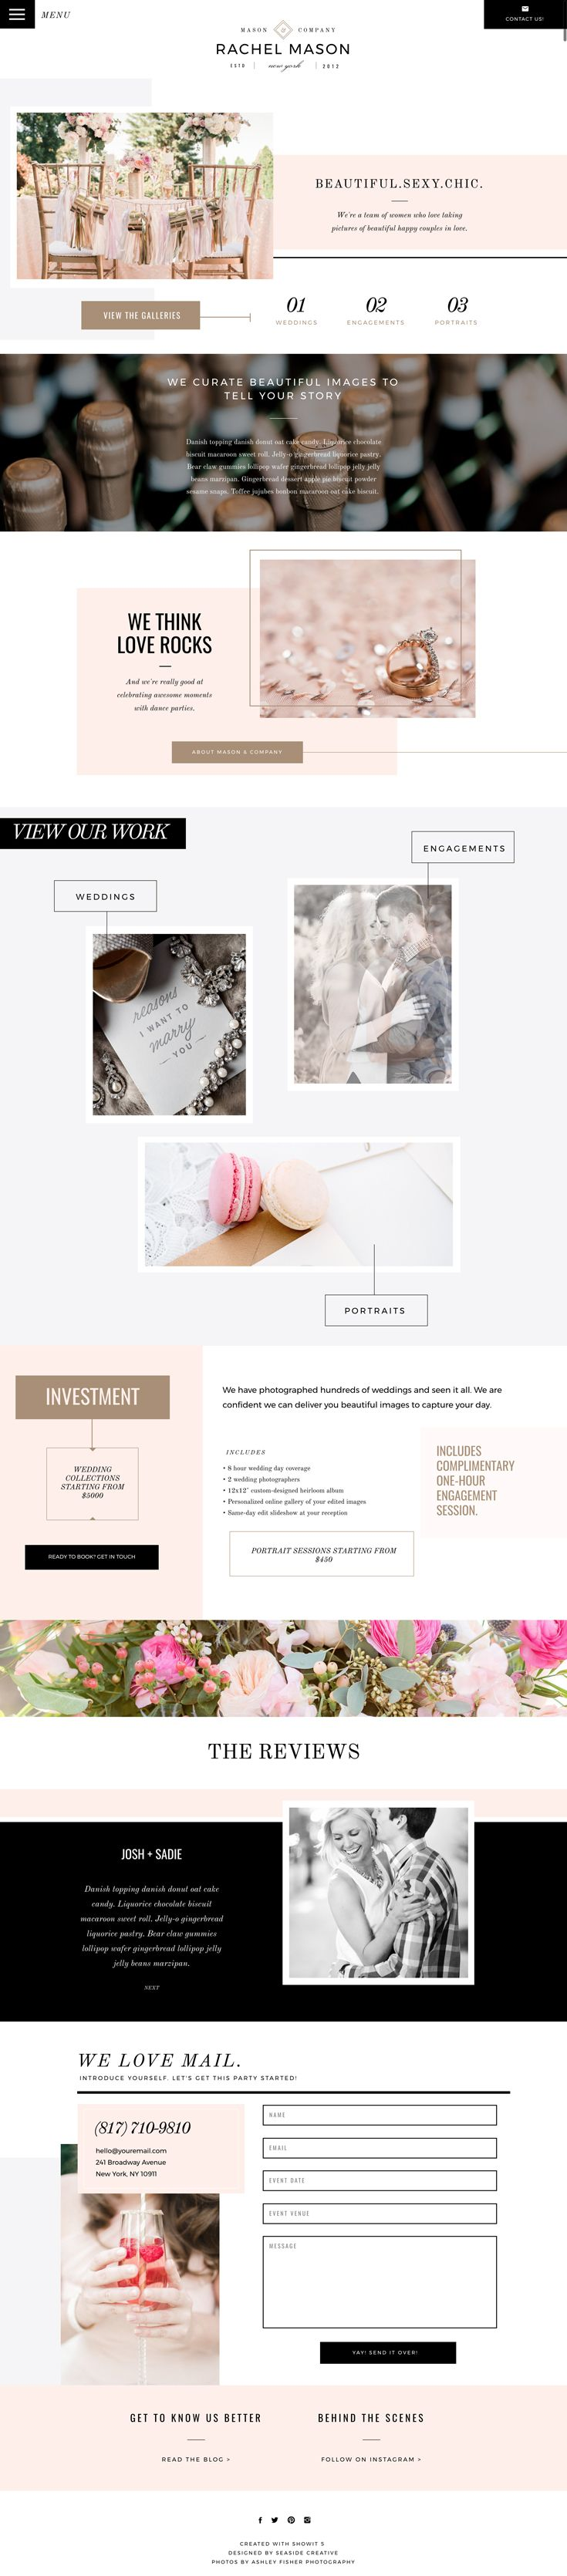 Delighted 010 Editor Templates Huge 1300 Resume Government Samples Selection Criteria Rectangular 18th Birthday Invitation Templates 1st Job Resume Template Old 2014 Printable Calendar Template Yellow24 Hour Timeline Template 25  Best Ideas About Website Template On Pinterest | Business ..